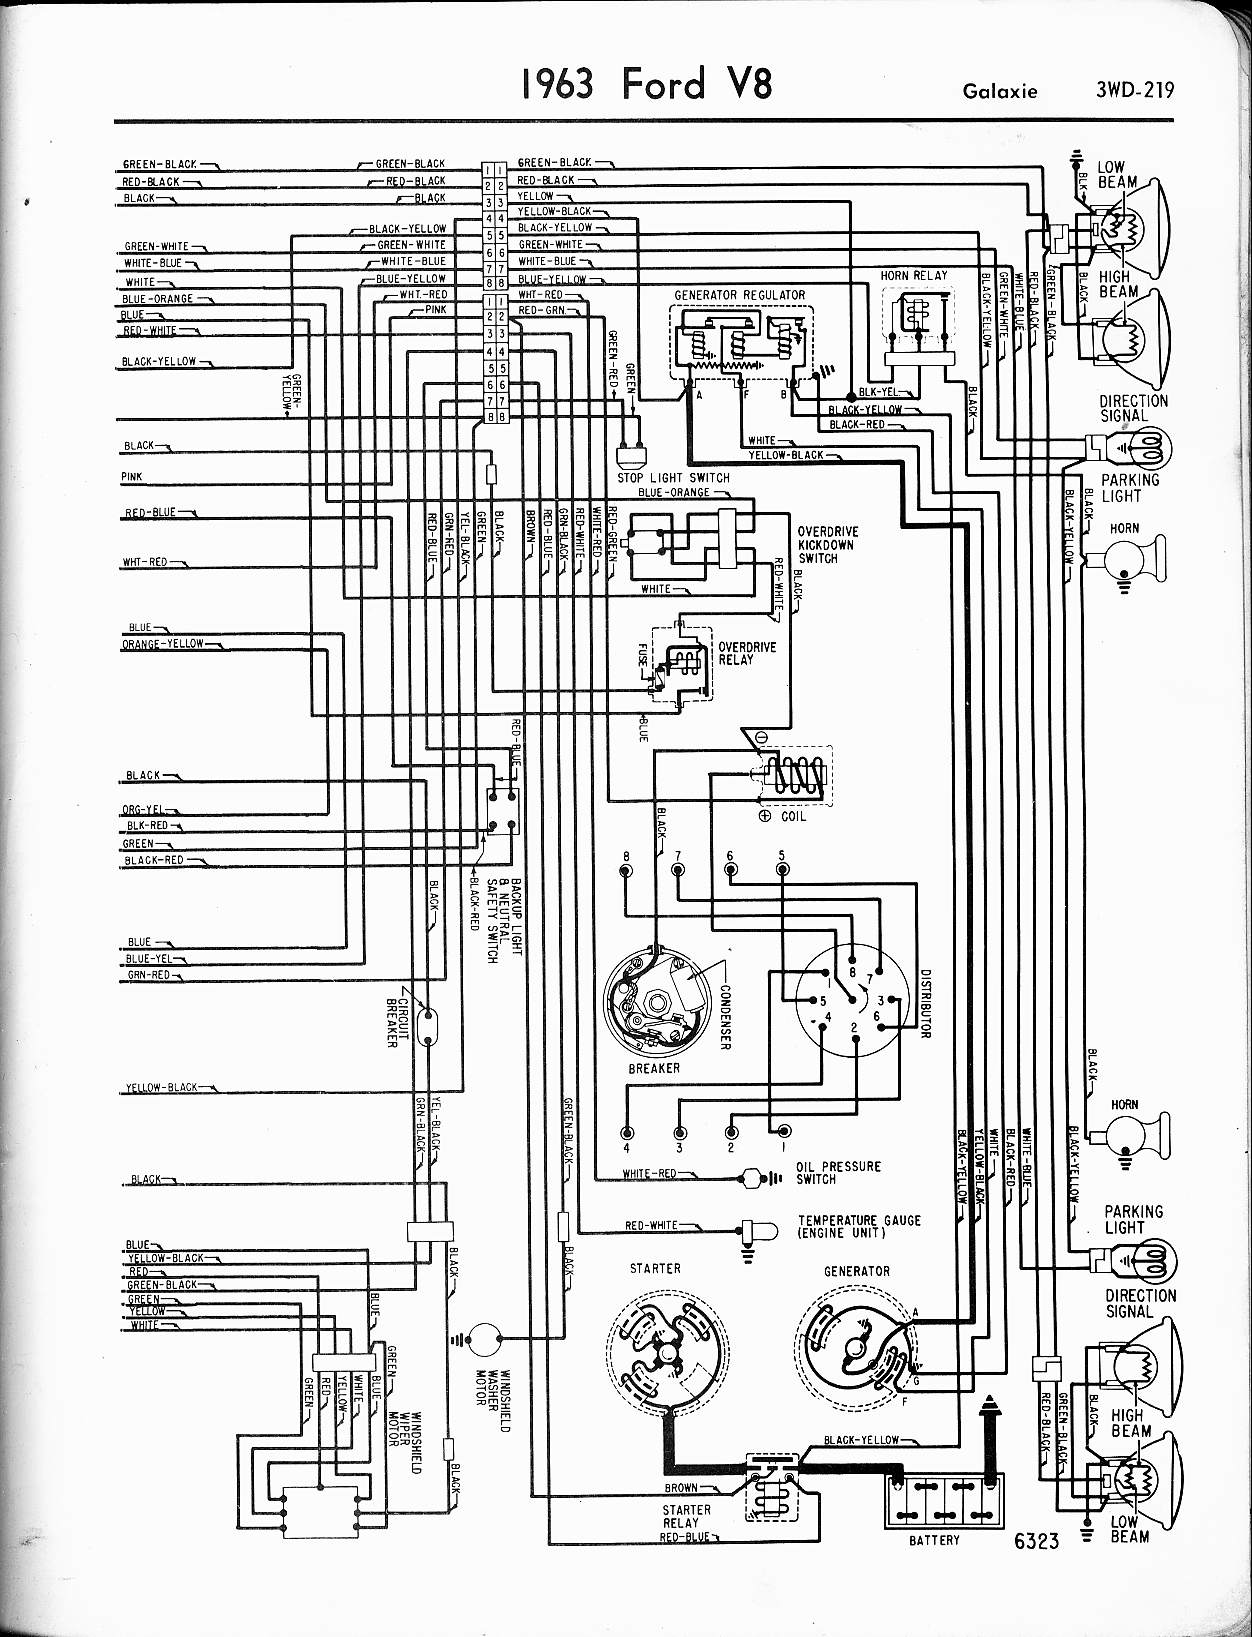 1965 ford wiring schematic 1965 ford galaxie wiring diagram schematic wiring diagram schematics  1965 ford galaxie wiring diagram